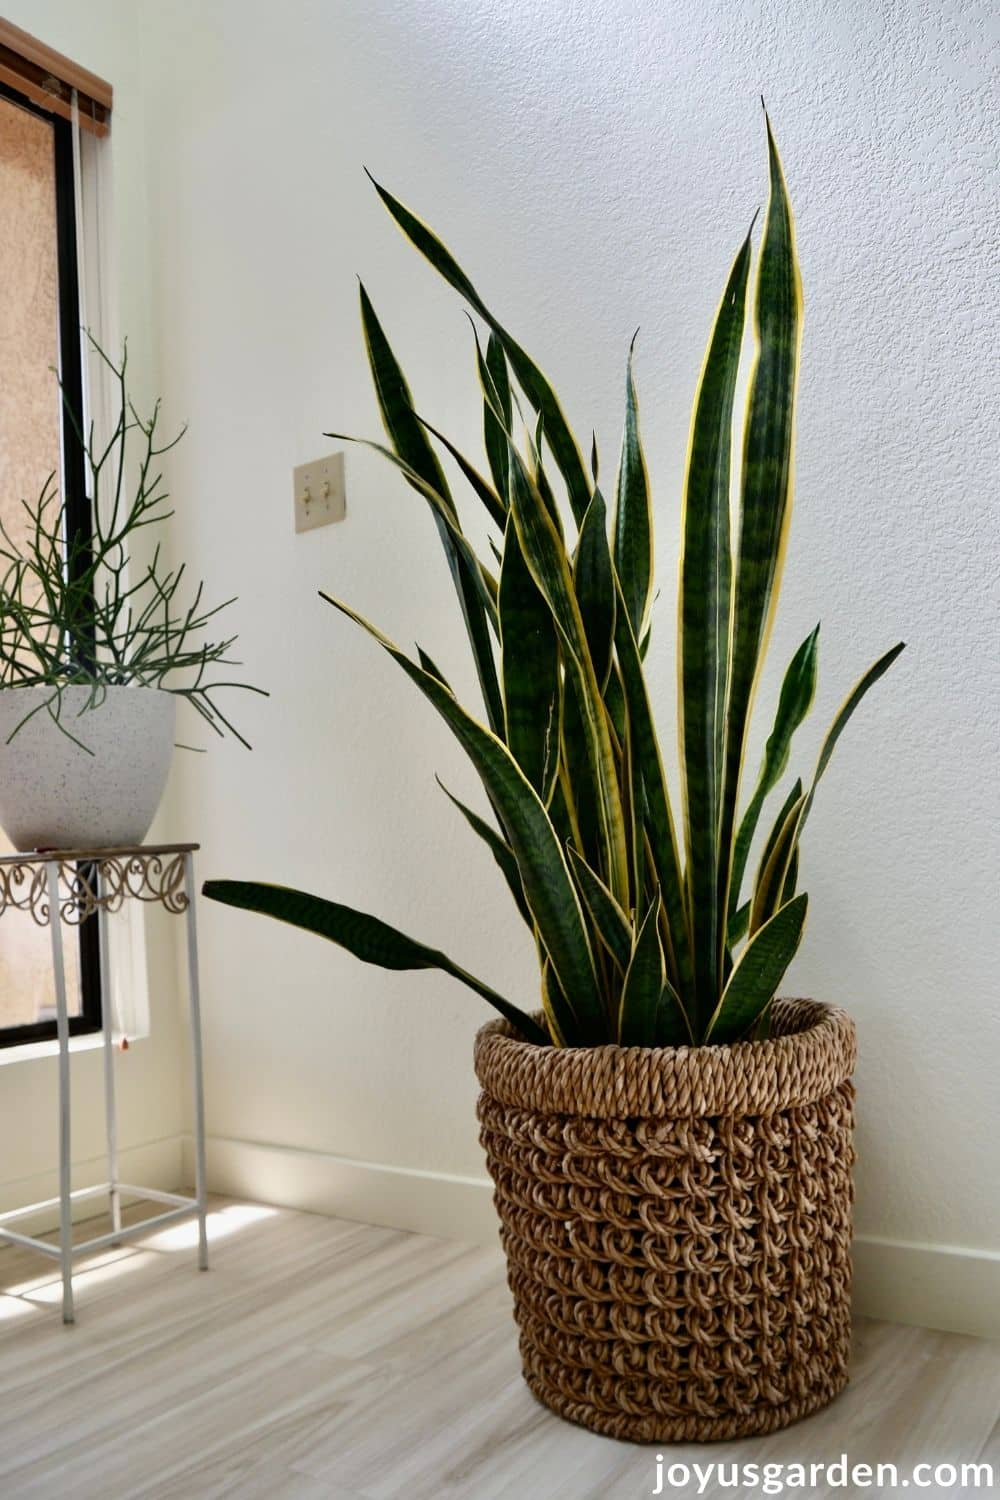 a large snake plant sansevieria in a basket sits on the floor next to a pencil cactus